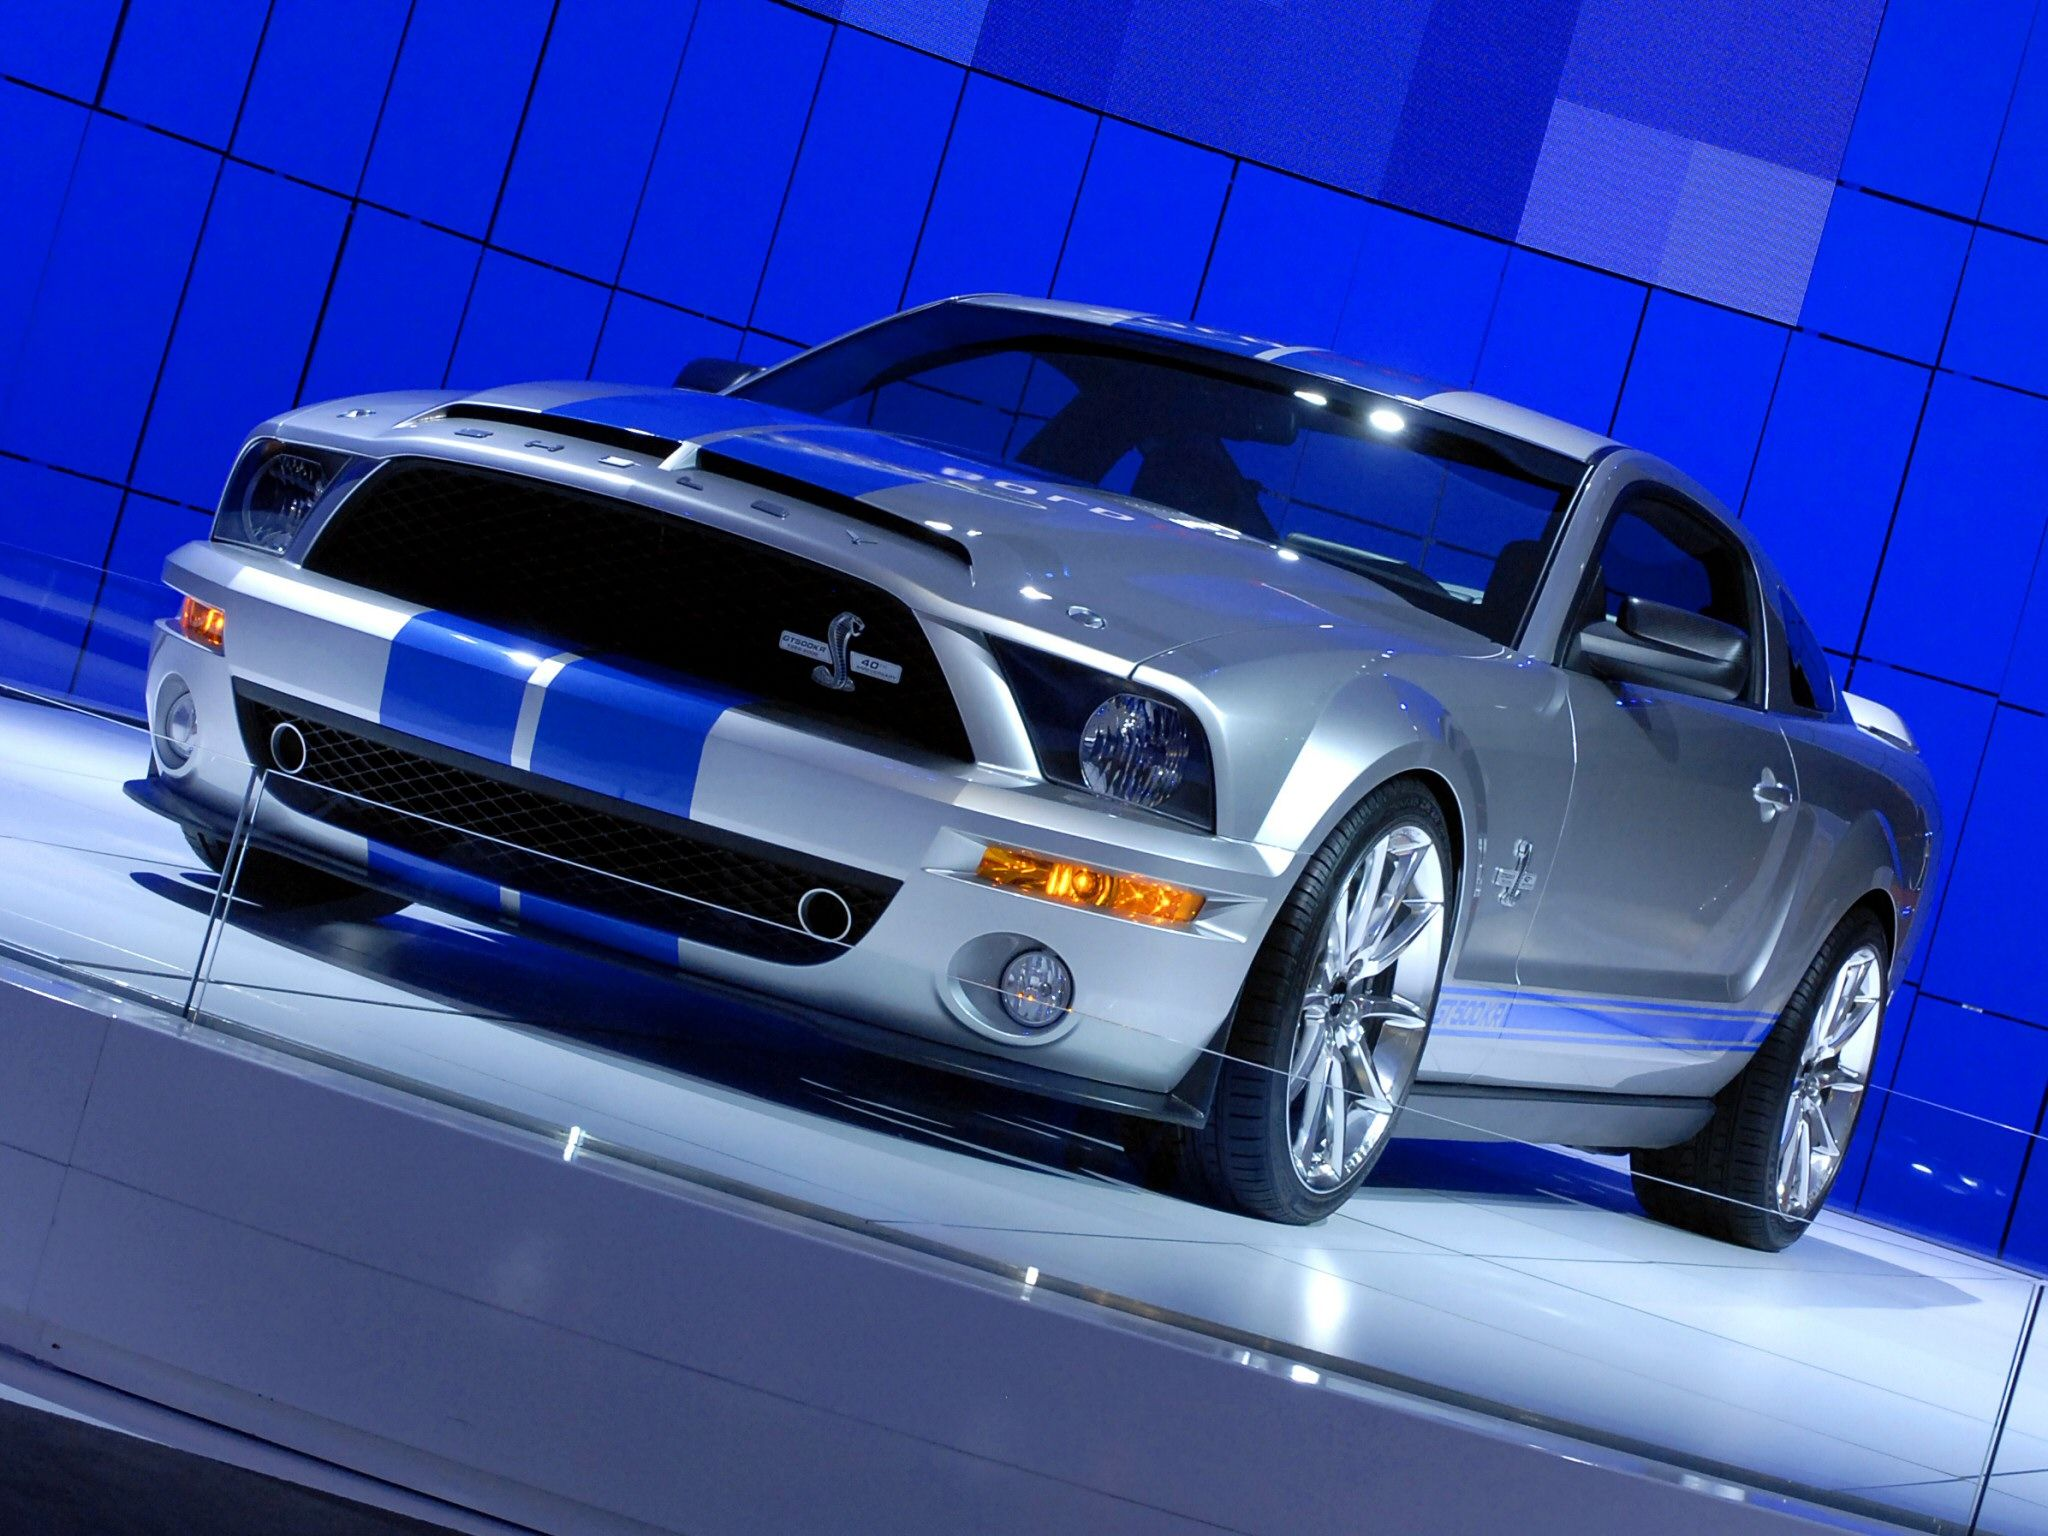 Ford Mustang Images  Transportation  Pinterest  Personalizar